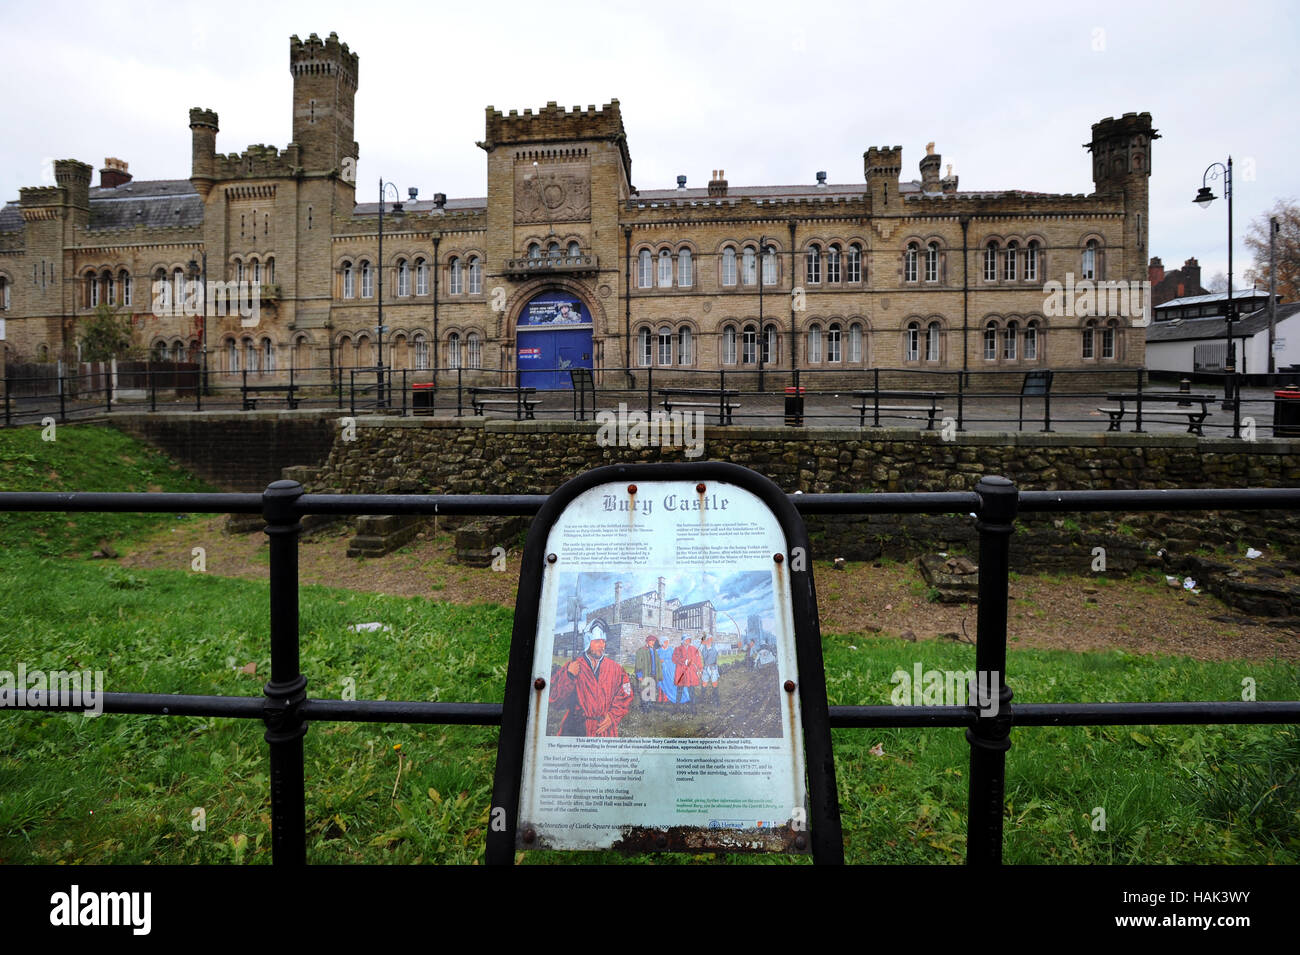 Castle Barracks and Armoury,  Bury, Lancashire. Picture by Paul Heyes, Thursday December 01, 2016. - Stock Image